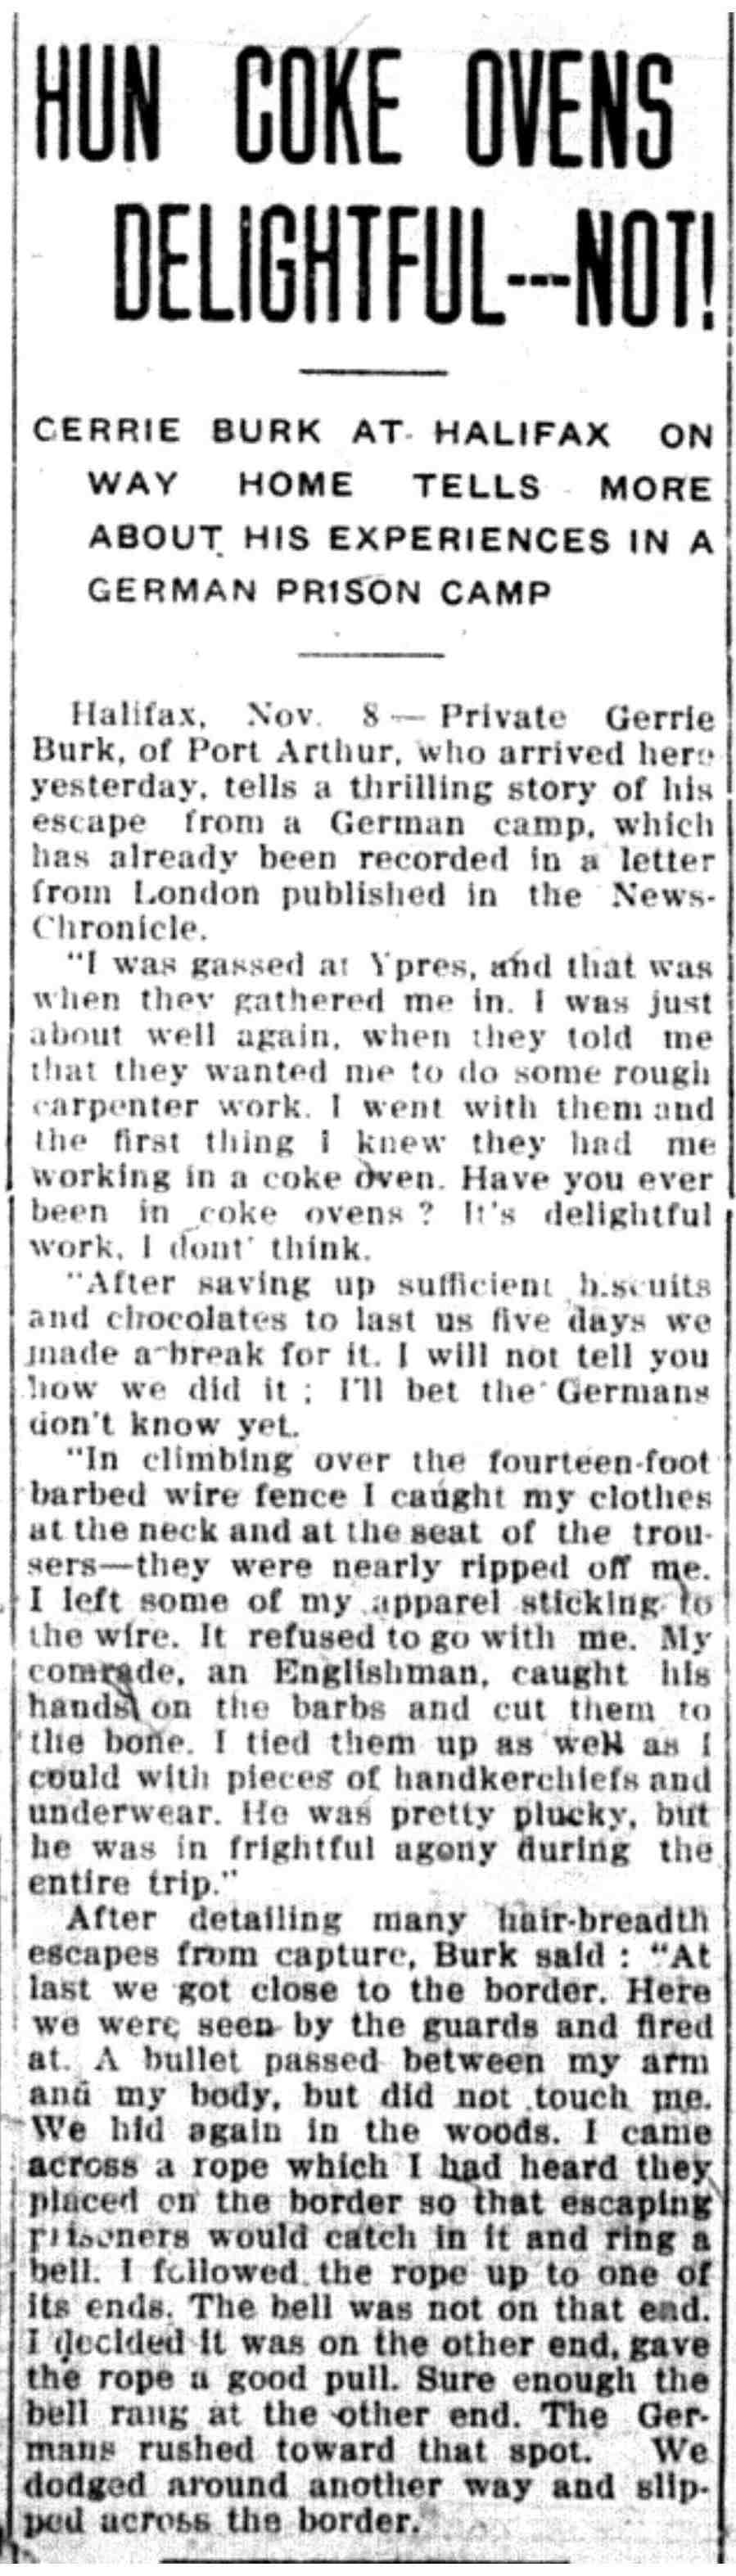 IHun Coke Ovens Delightful---Not! November 9, 1916